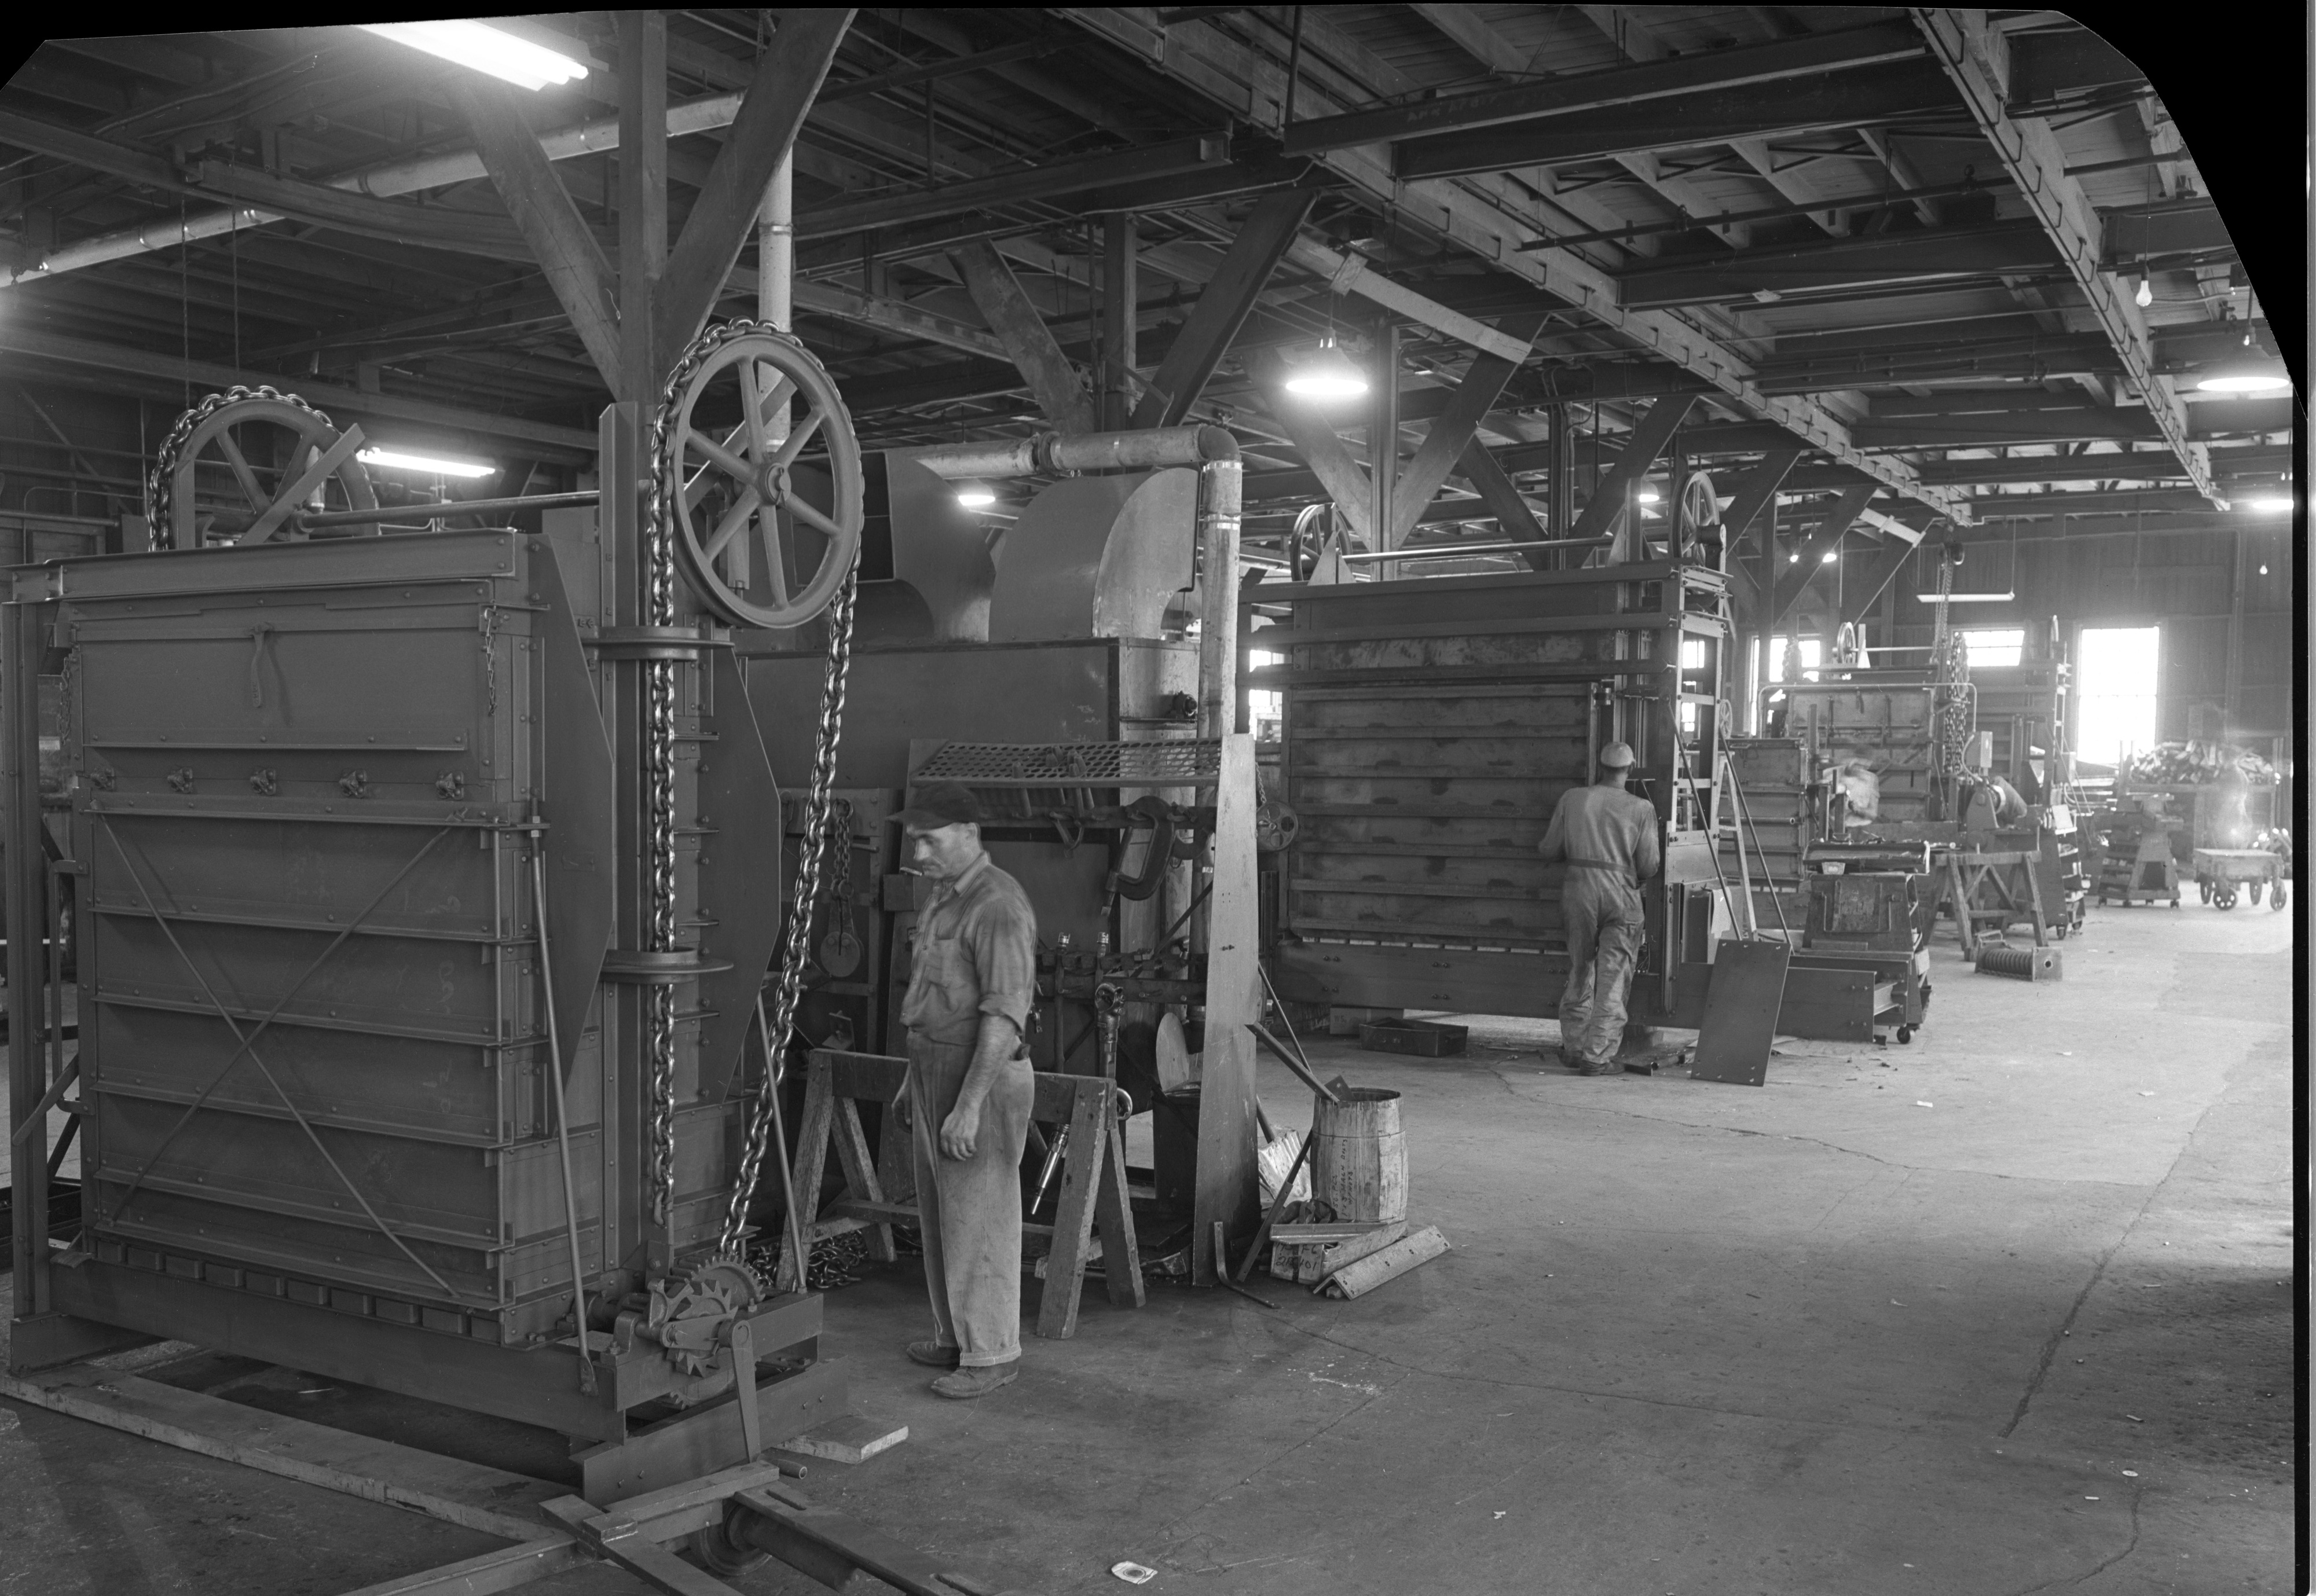 Economy Baler Co. - Small Assembly Plant, June 1953 image